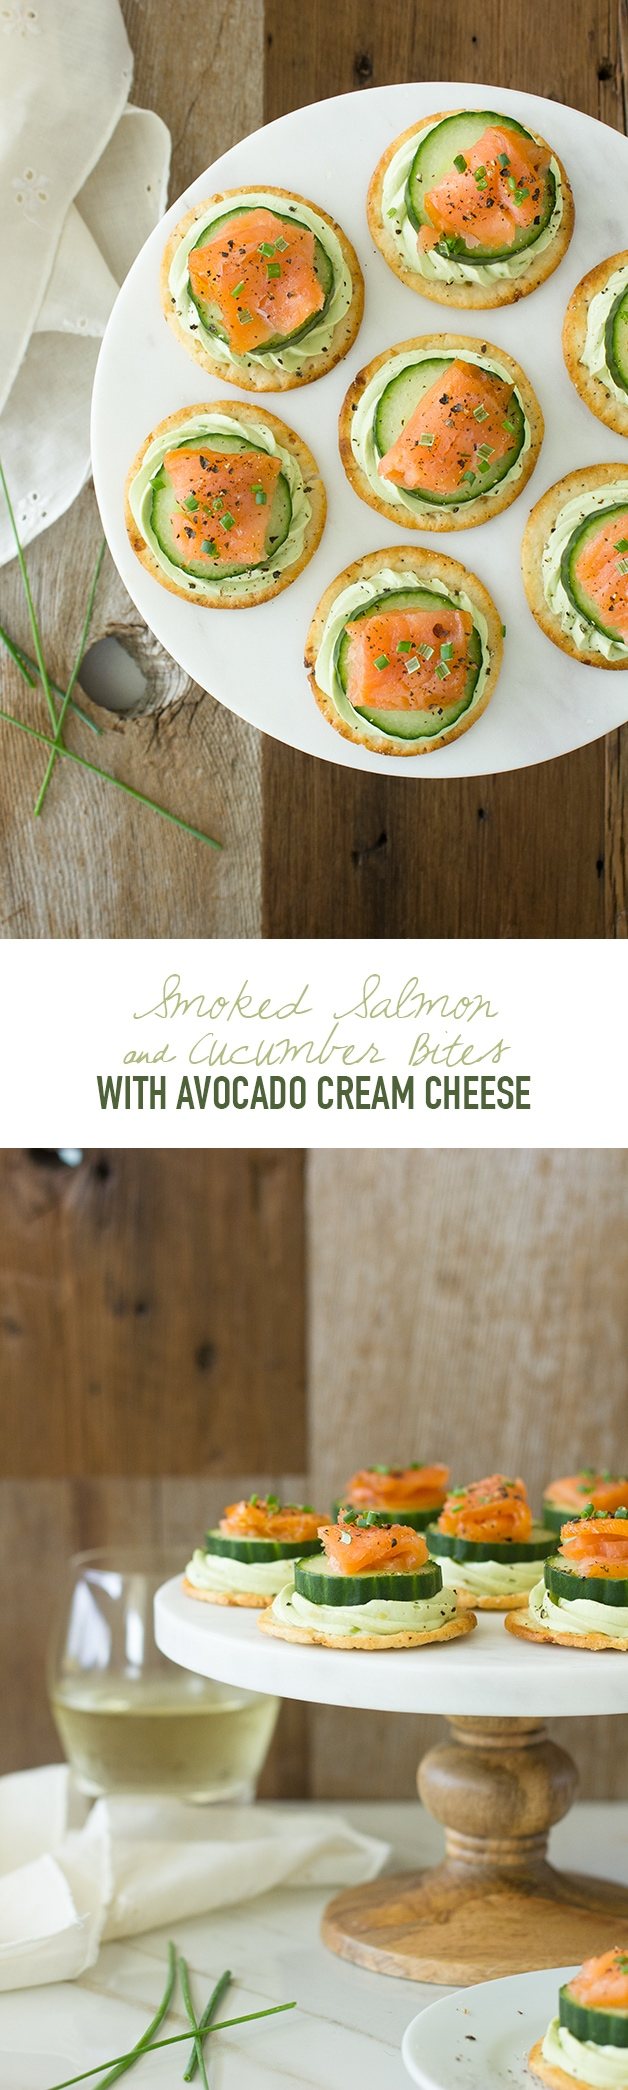 Smoked Salmon & Cucumber Bites with Avocado Cream Cheese - a simple but elegant appetizer to serve for any gathering! | www.brighteyedbaker.com #BretonGlutenFree #CleverGirls